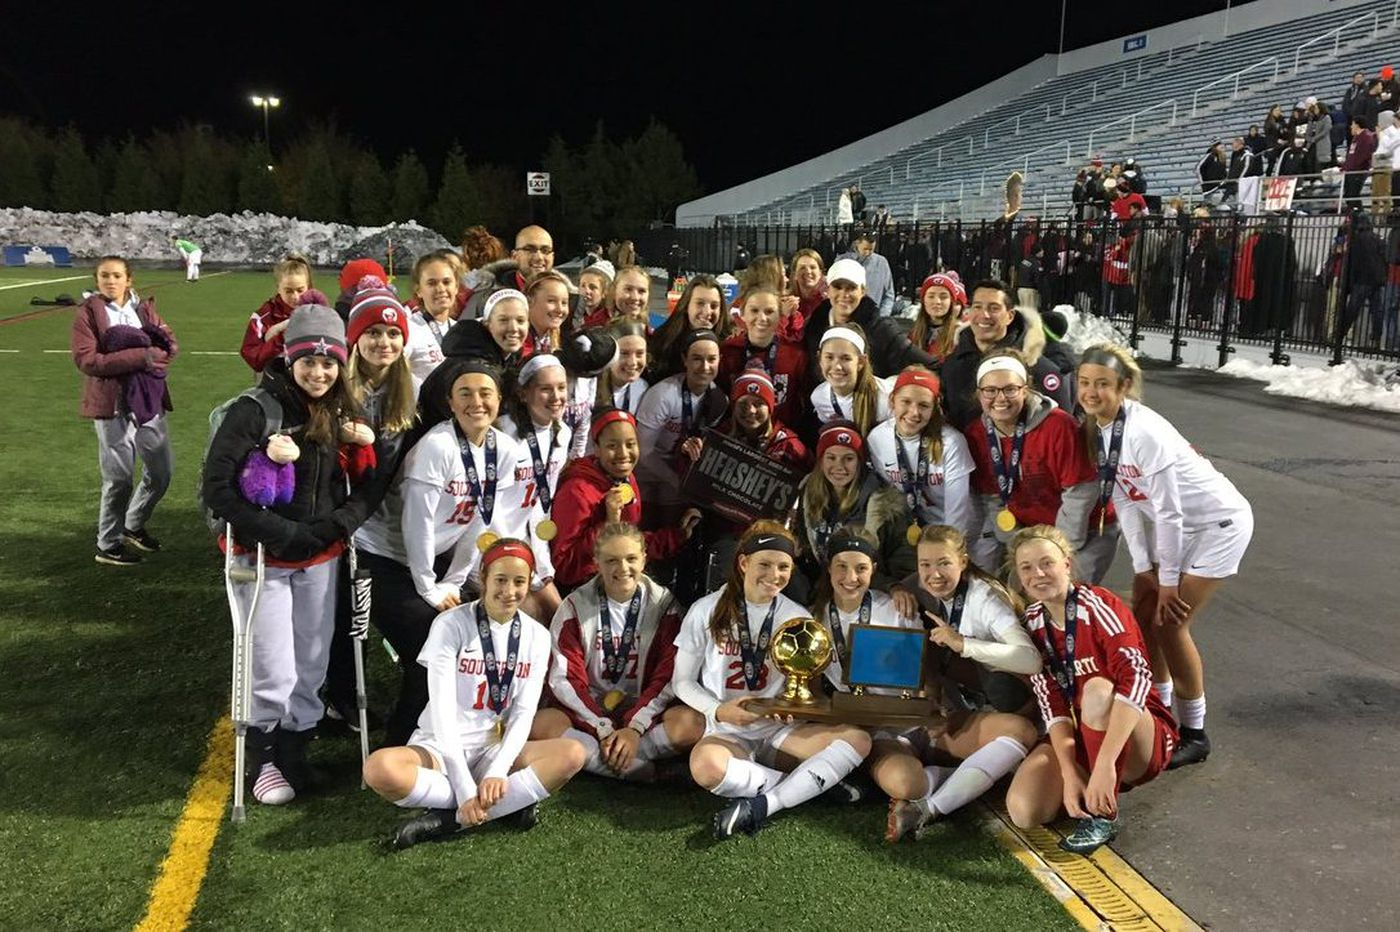 Saturday's Southeastern Pa. roundup: Souderton girls' soccer beats Pennridge to capture the state championship